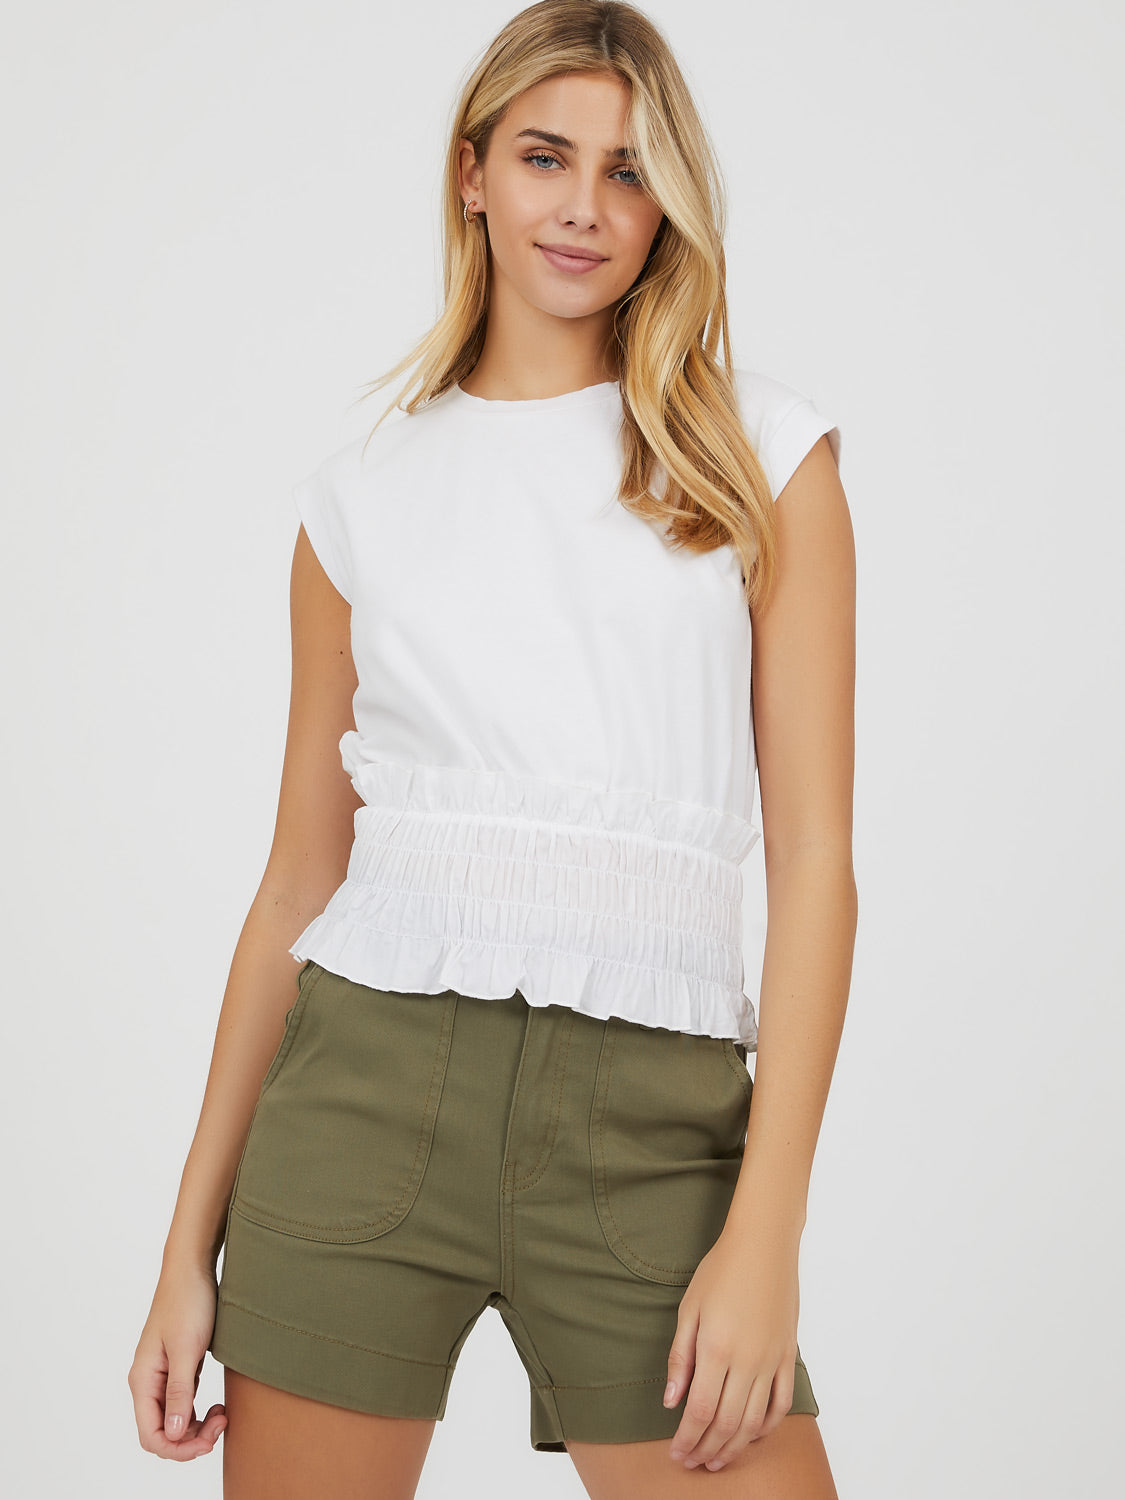 Short Sleeve Smocked Waist Poplin Knit Top